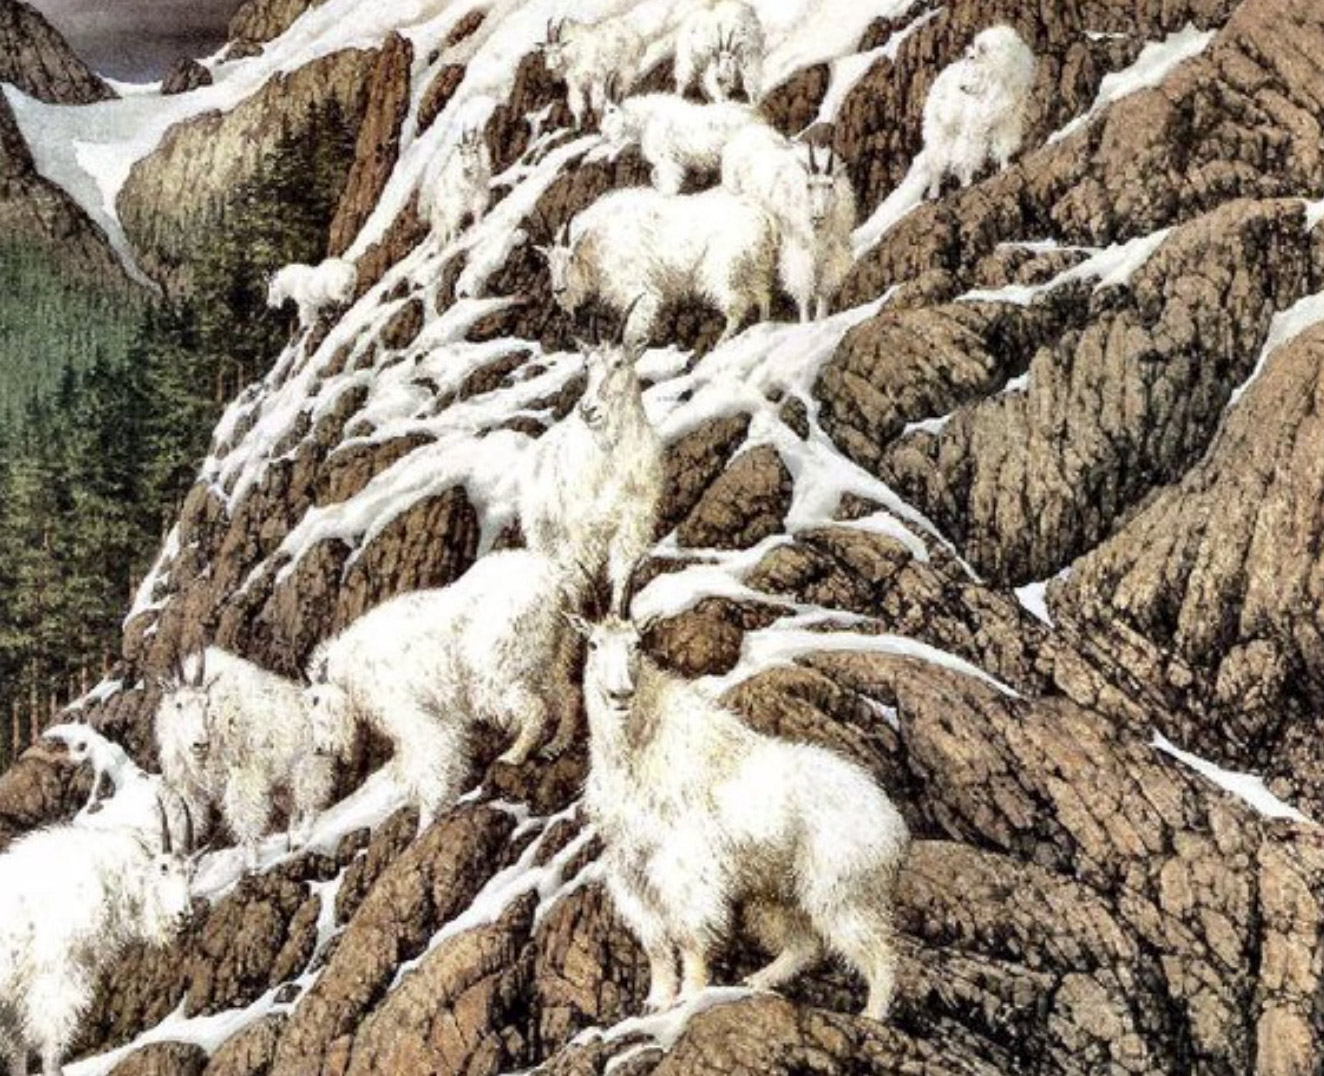 How many goats can you see?